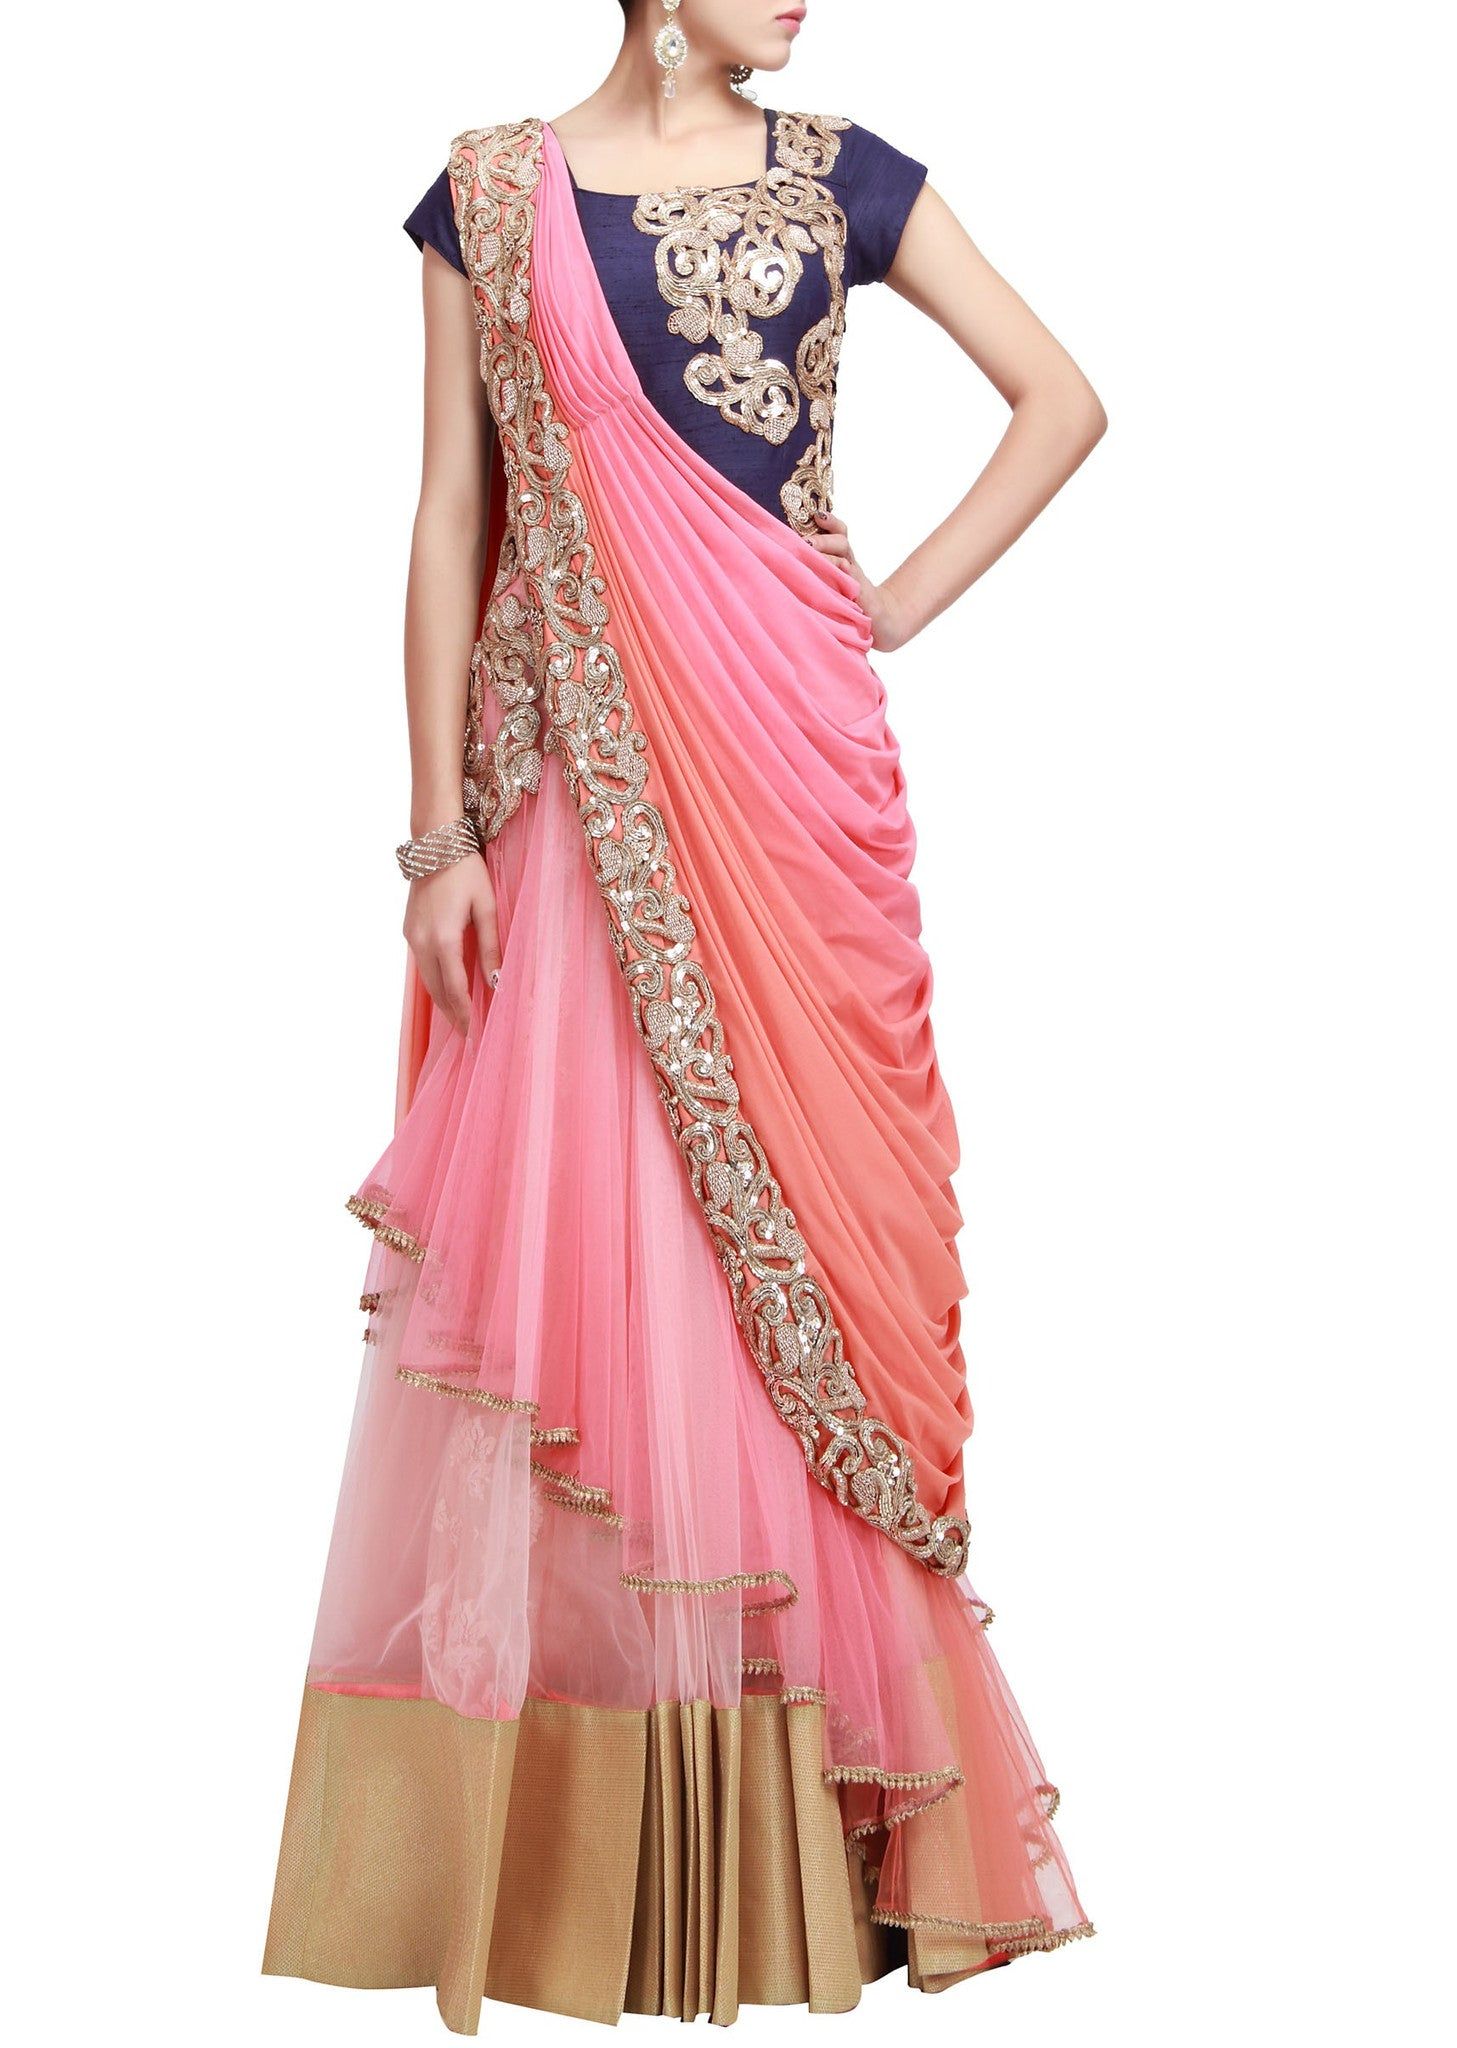 Peach and pink saree gown – Panache Haute Couture